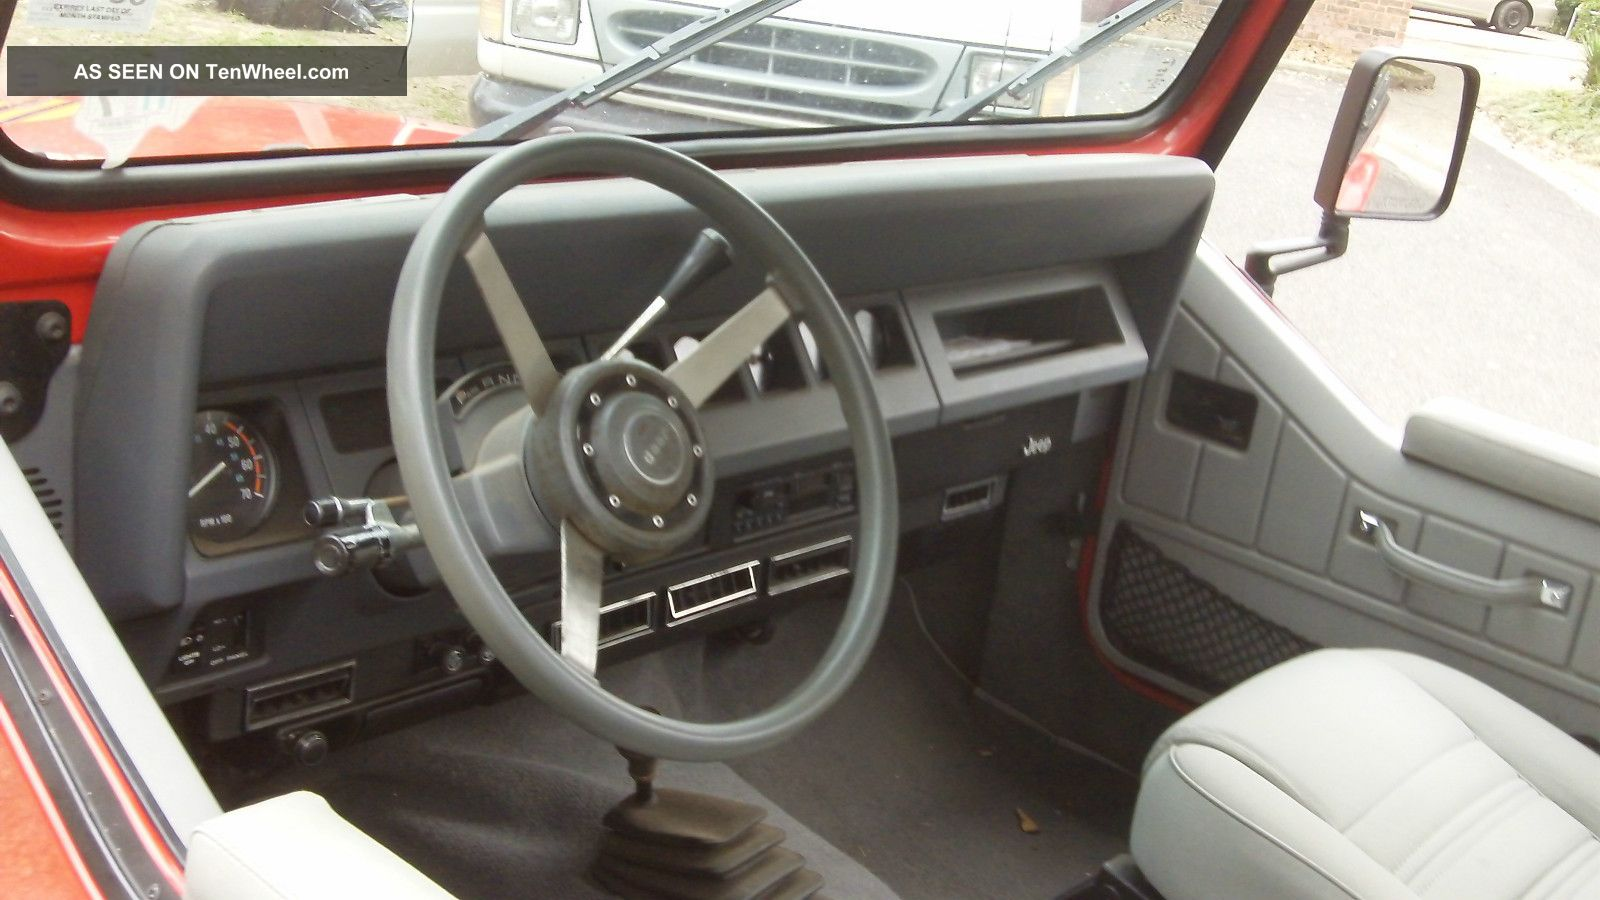 1989 jeep wrangler interior car interior design